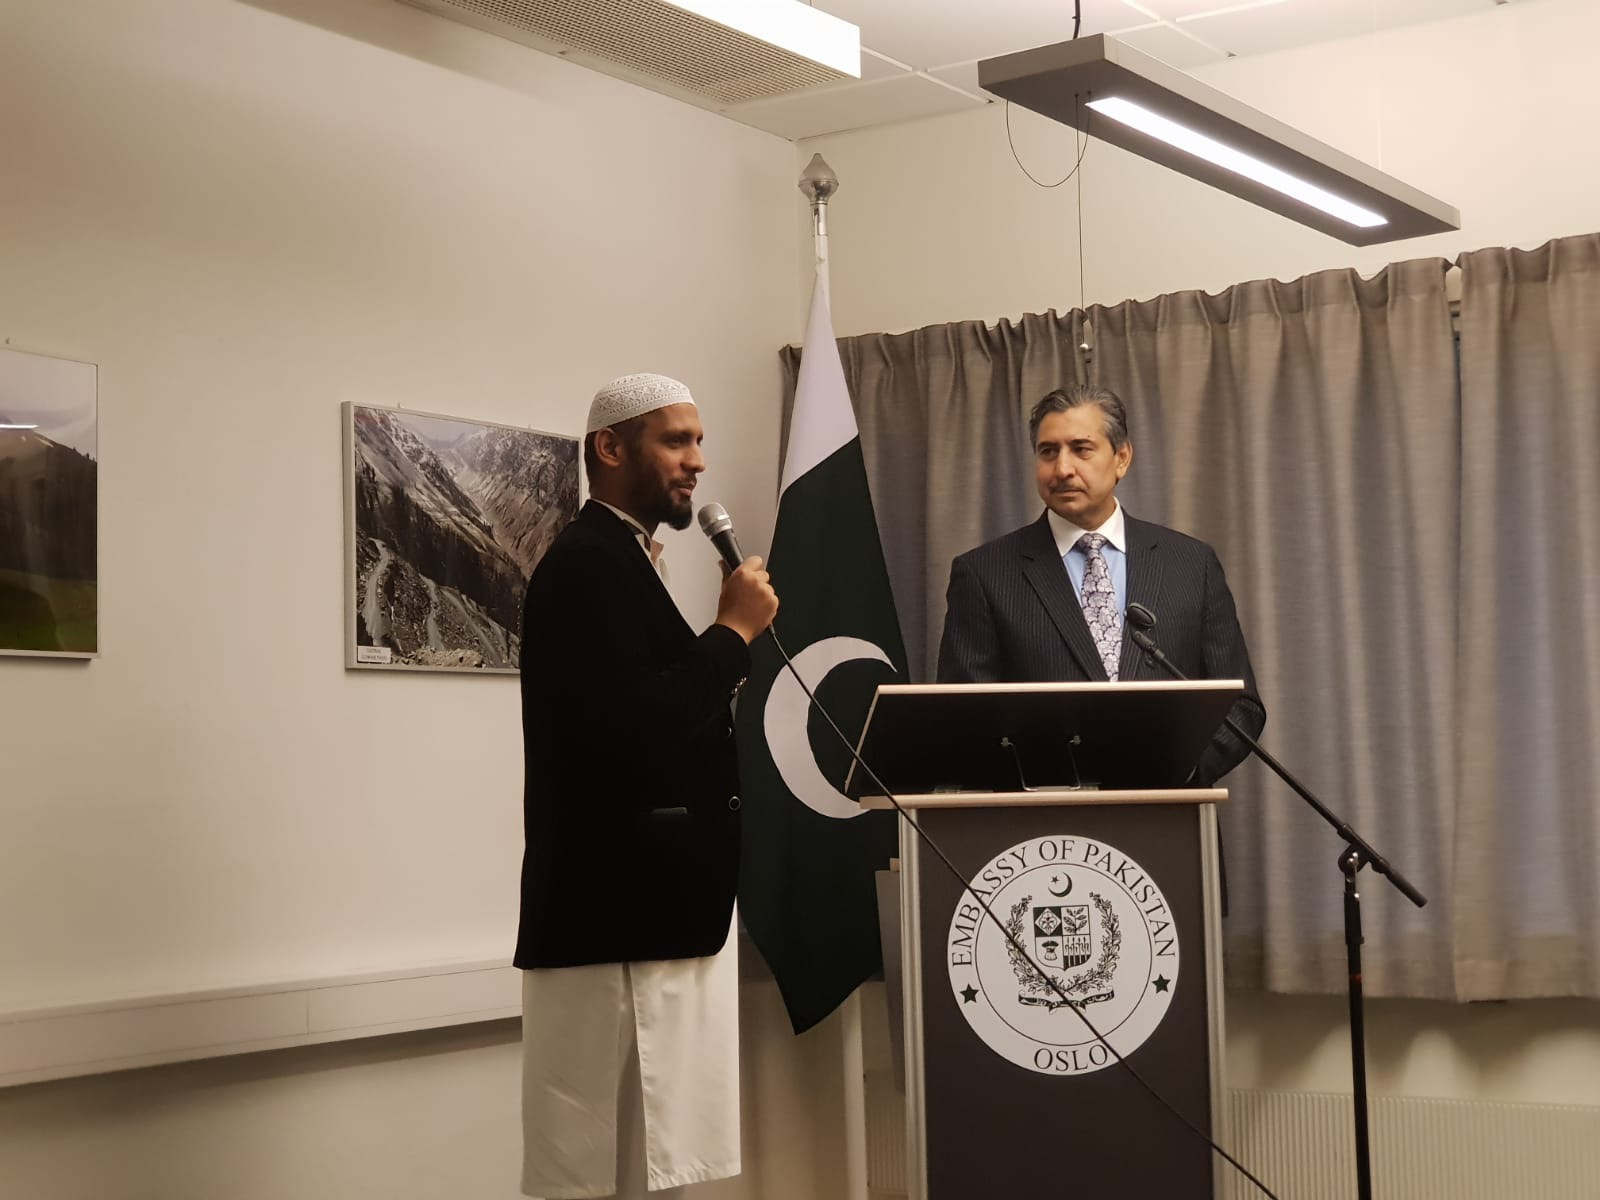 Meeting Of The Ambassador He Zaheer Pervaiz Khan With The Management Committees Of The Mosques And Madaaras In Norway At The Embassy Of Pakistan Oslo On 25 September 2018